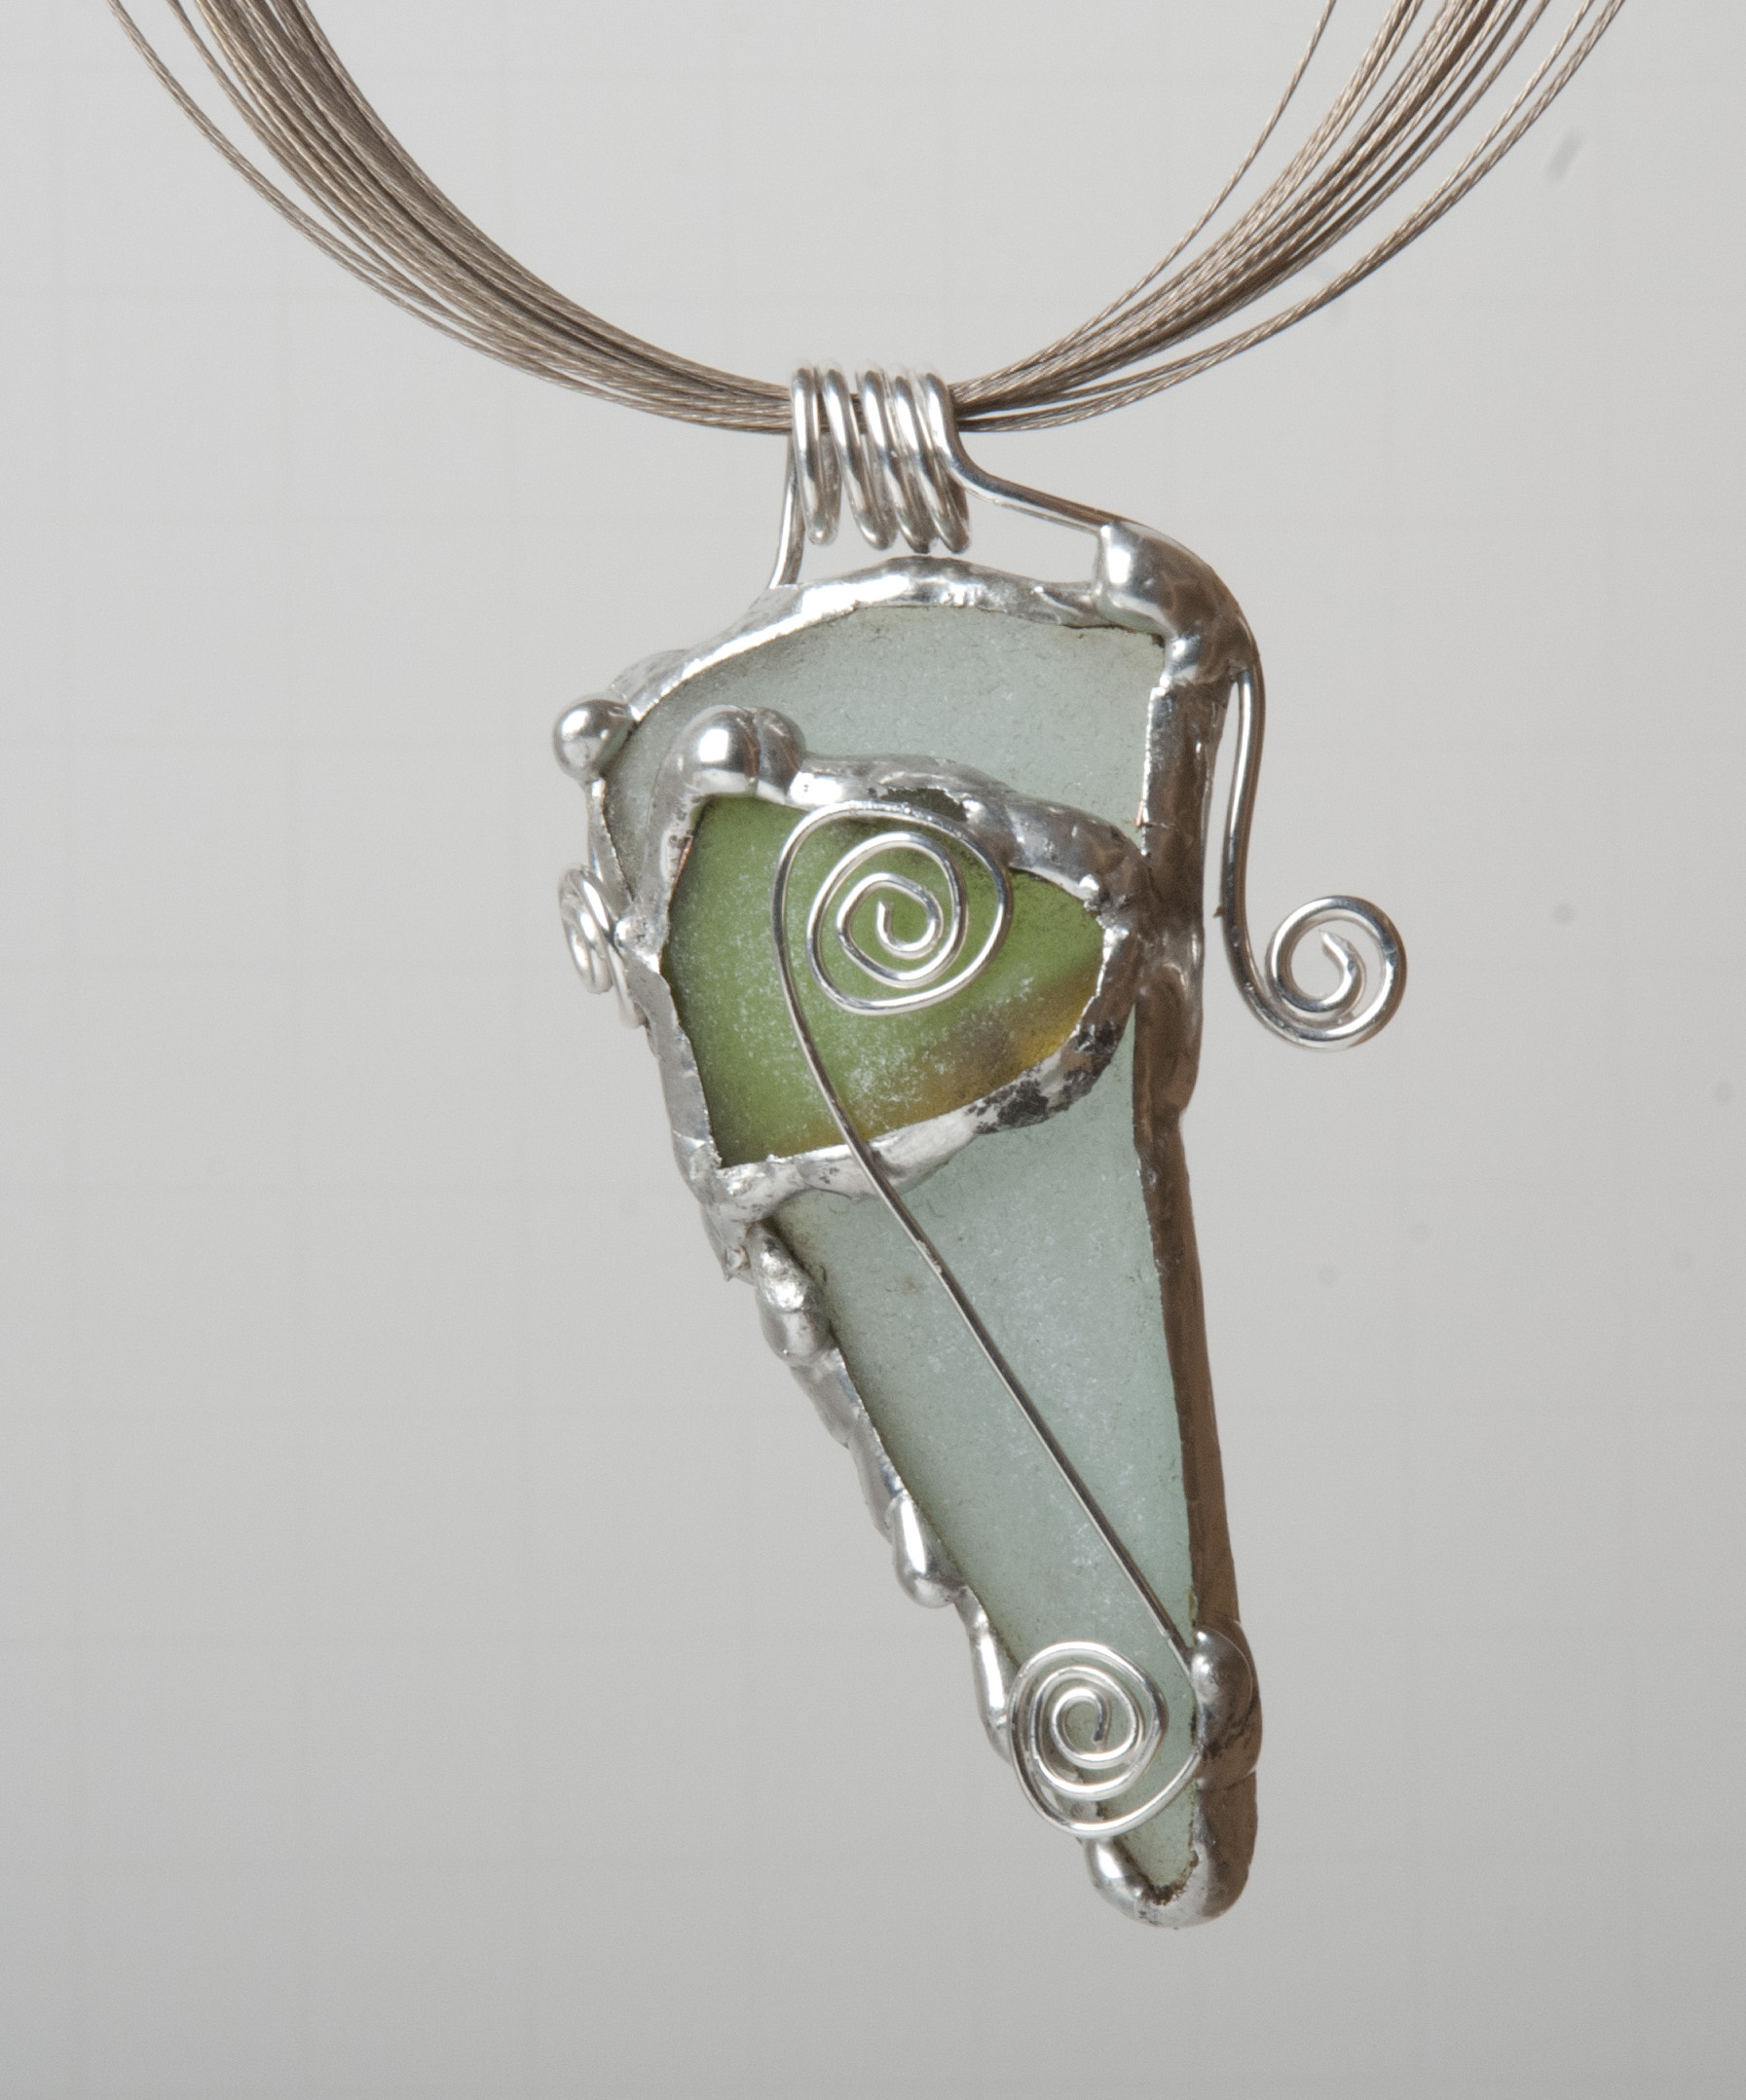 Sea Glass Pendant made using a soldering iron, lead-free solder, soldering supplies, sterling silver wire